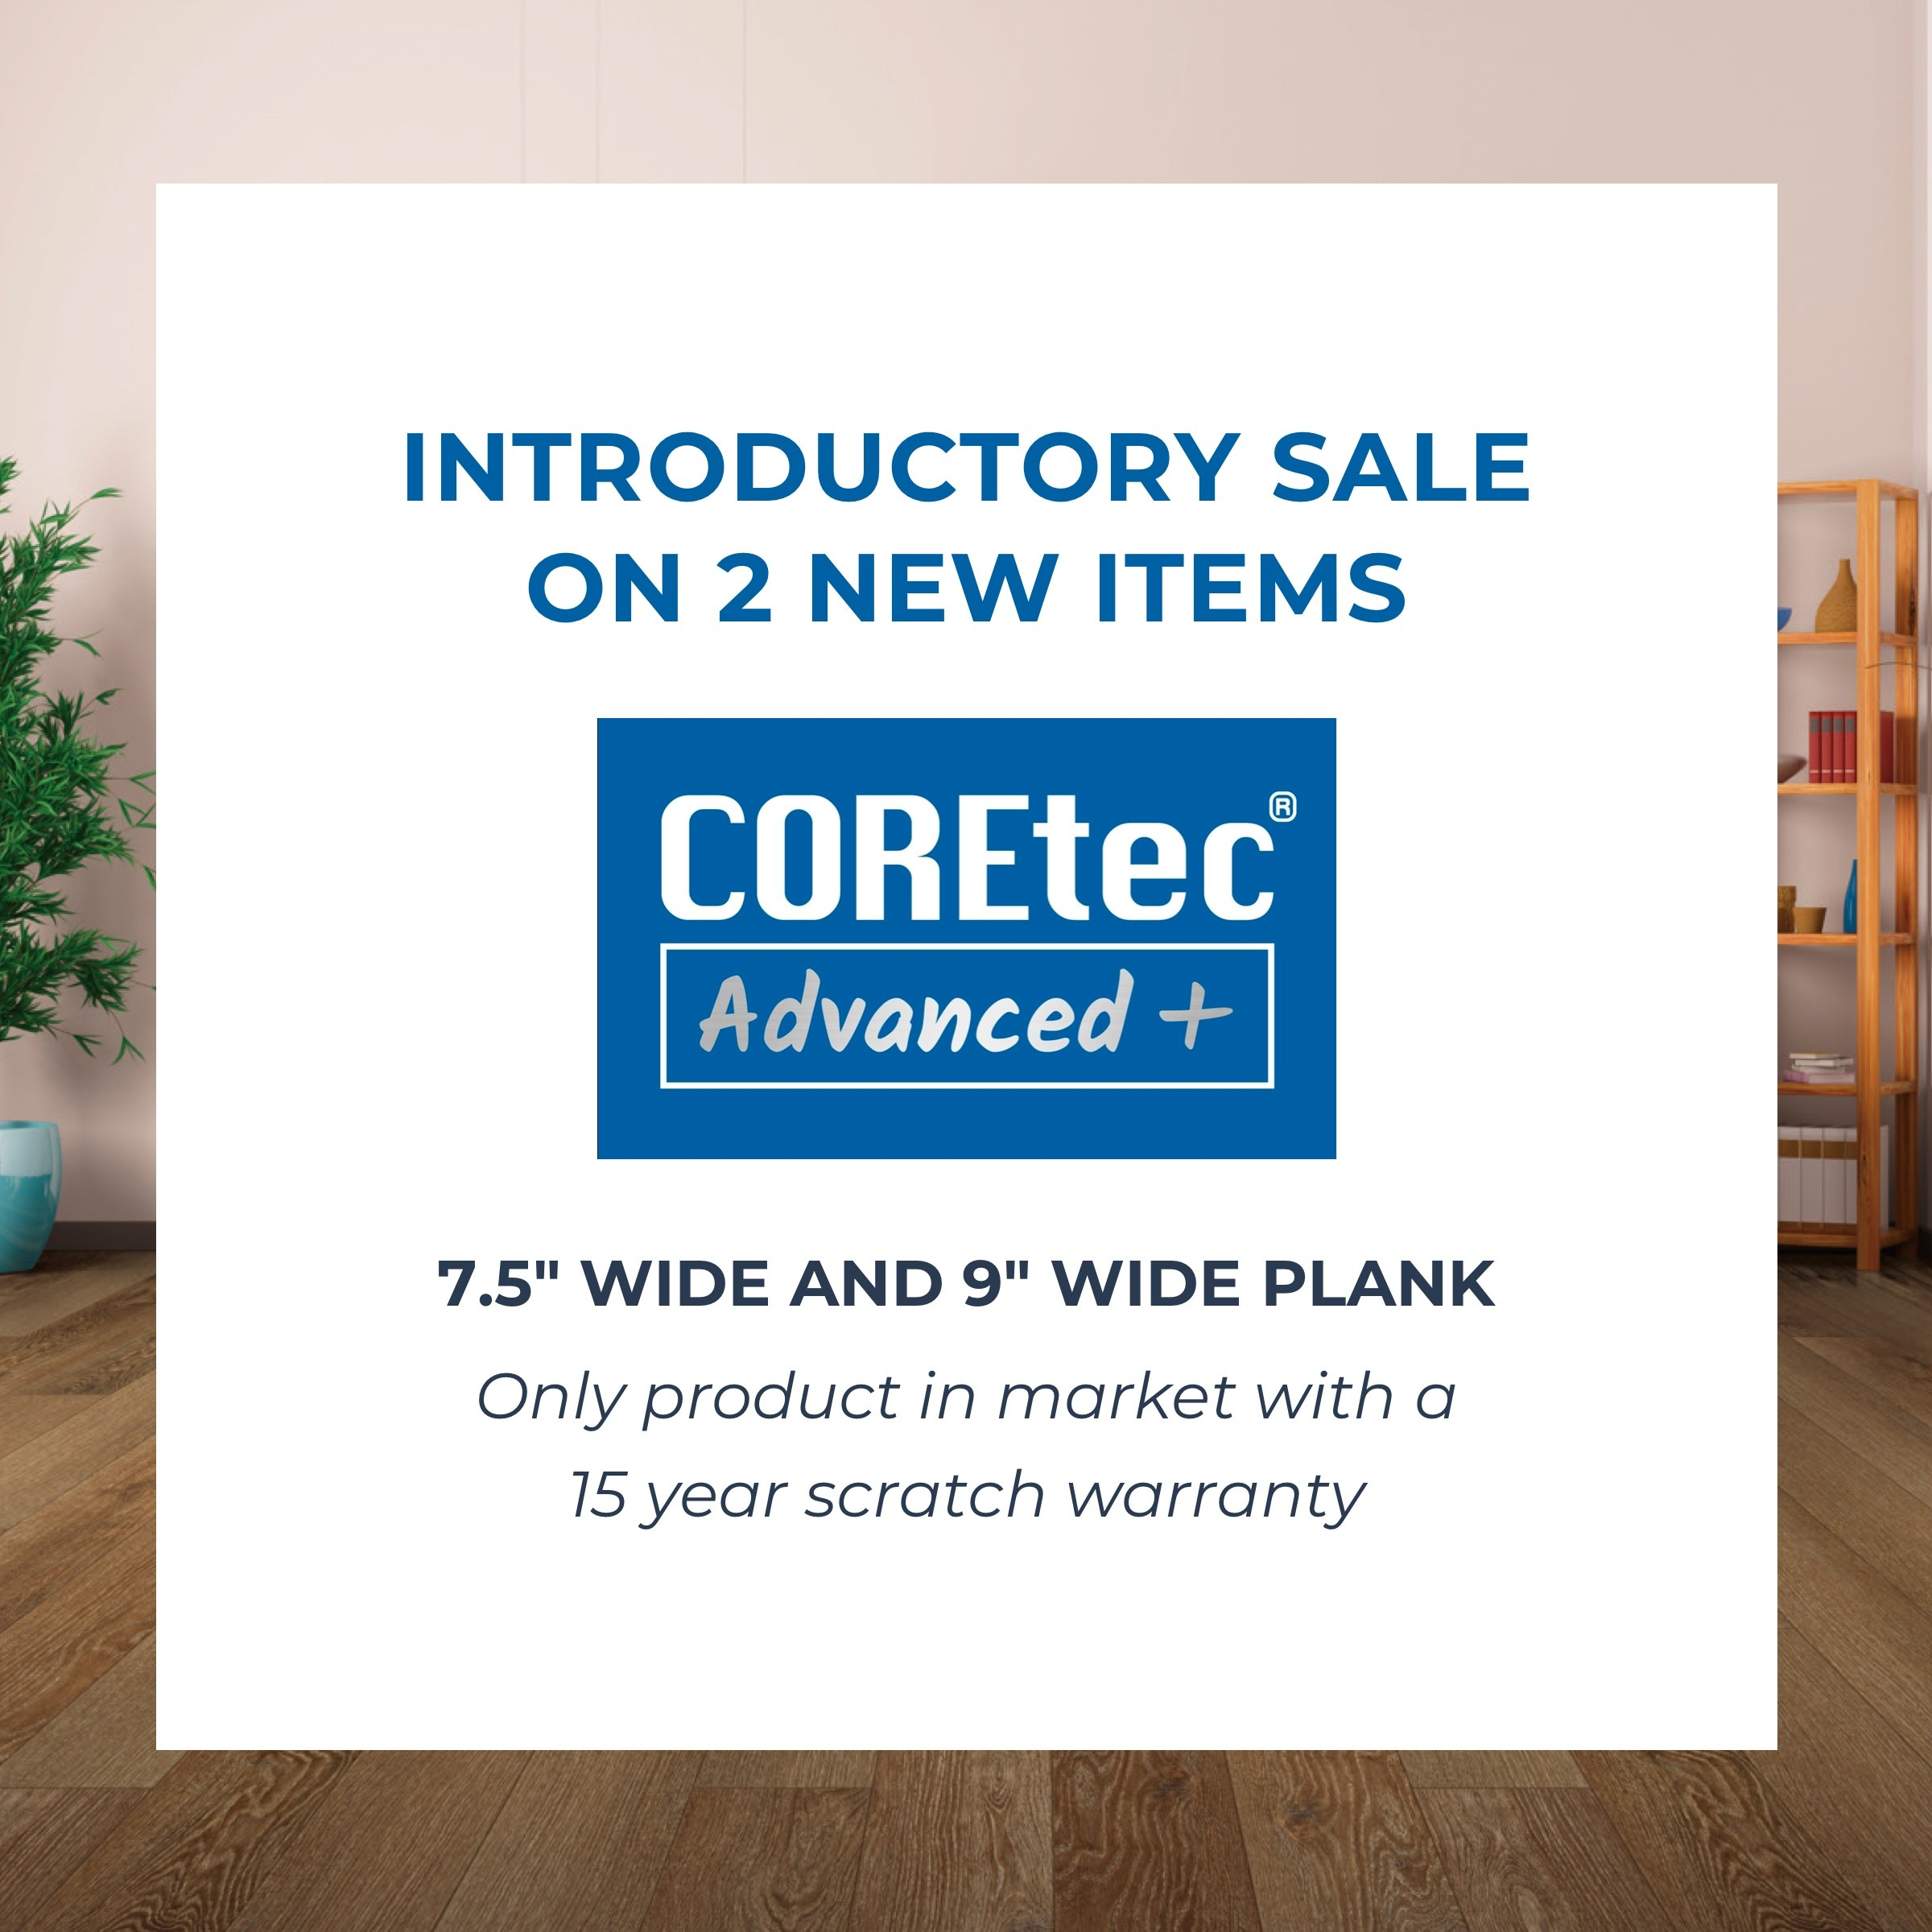 """Coretec Advanced+ 7.5"""" wide and 9"""" wide plank - Only product in market with a 15 year scratch warranty"""